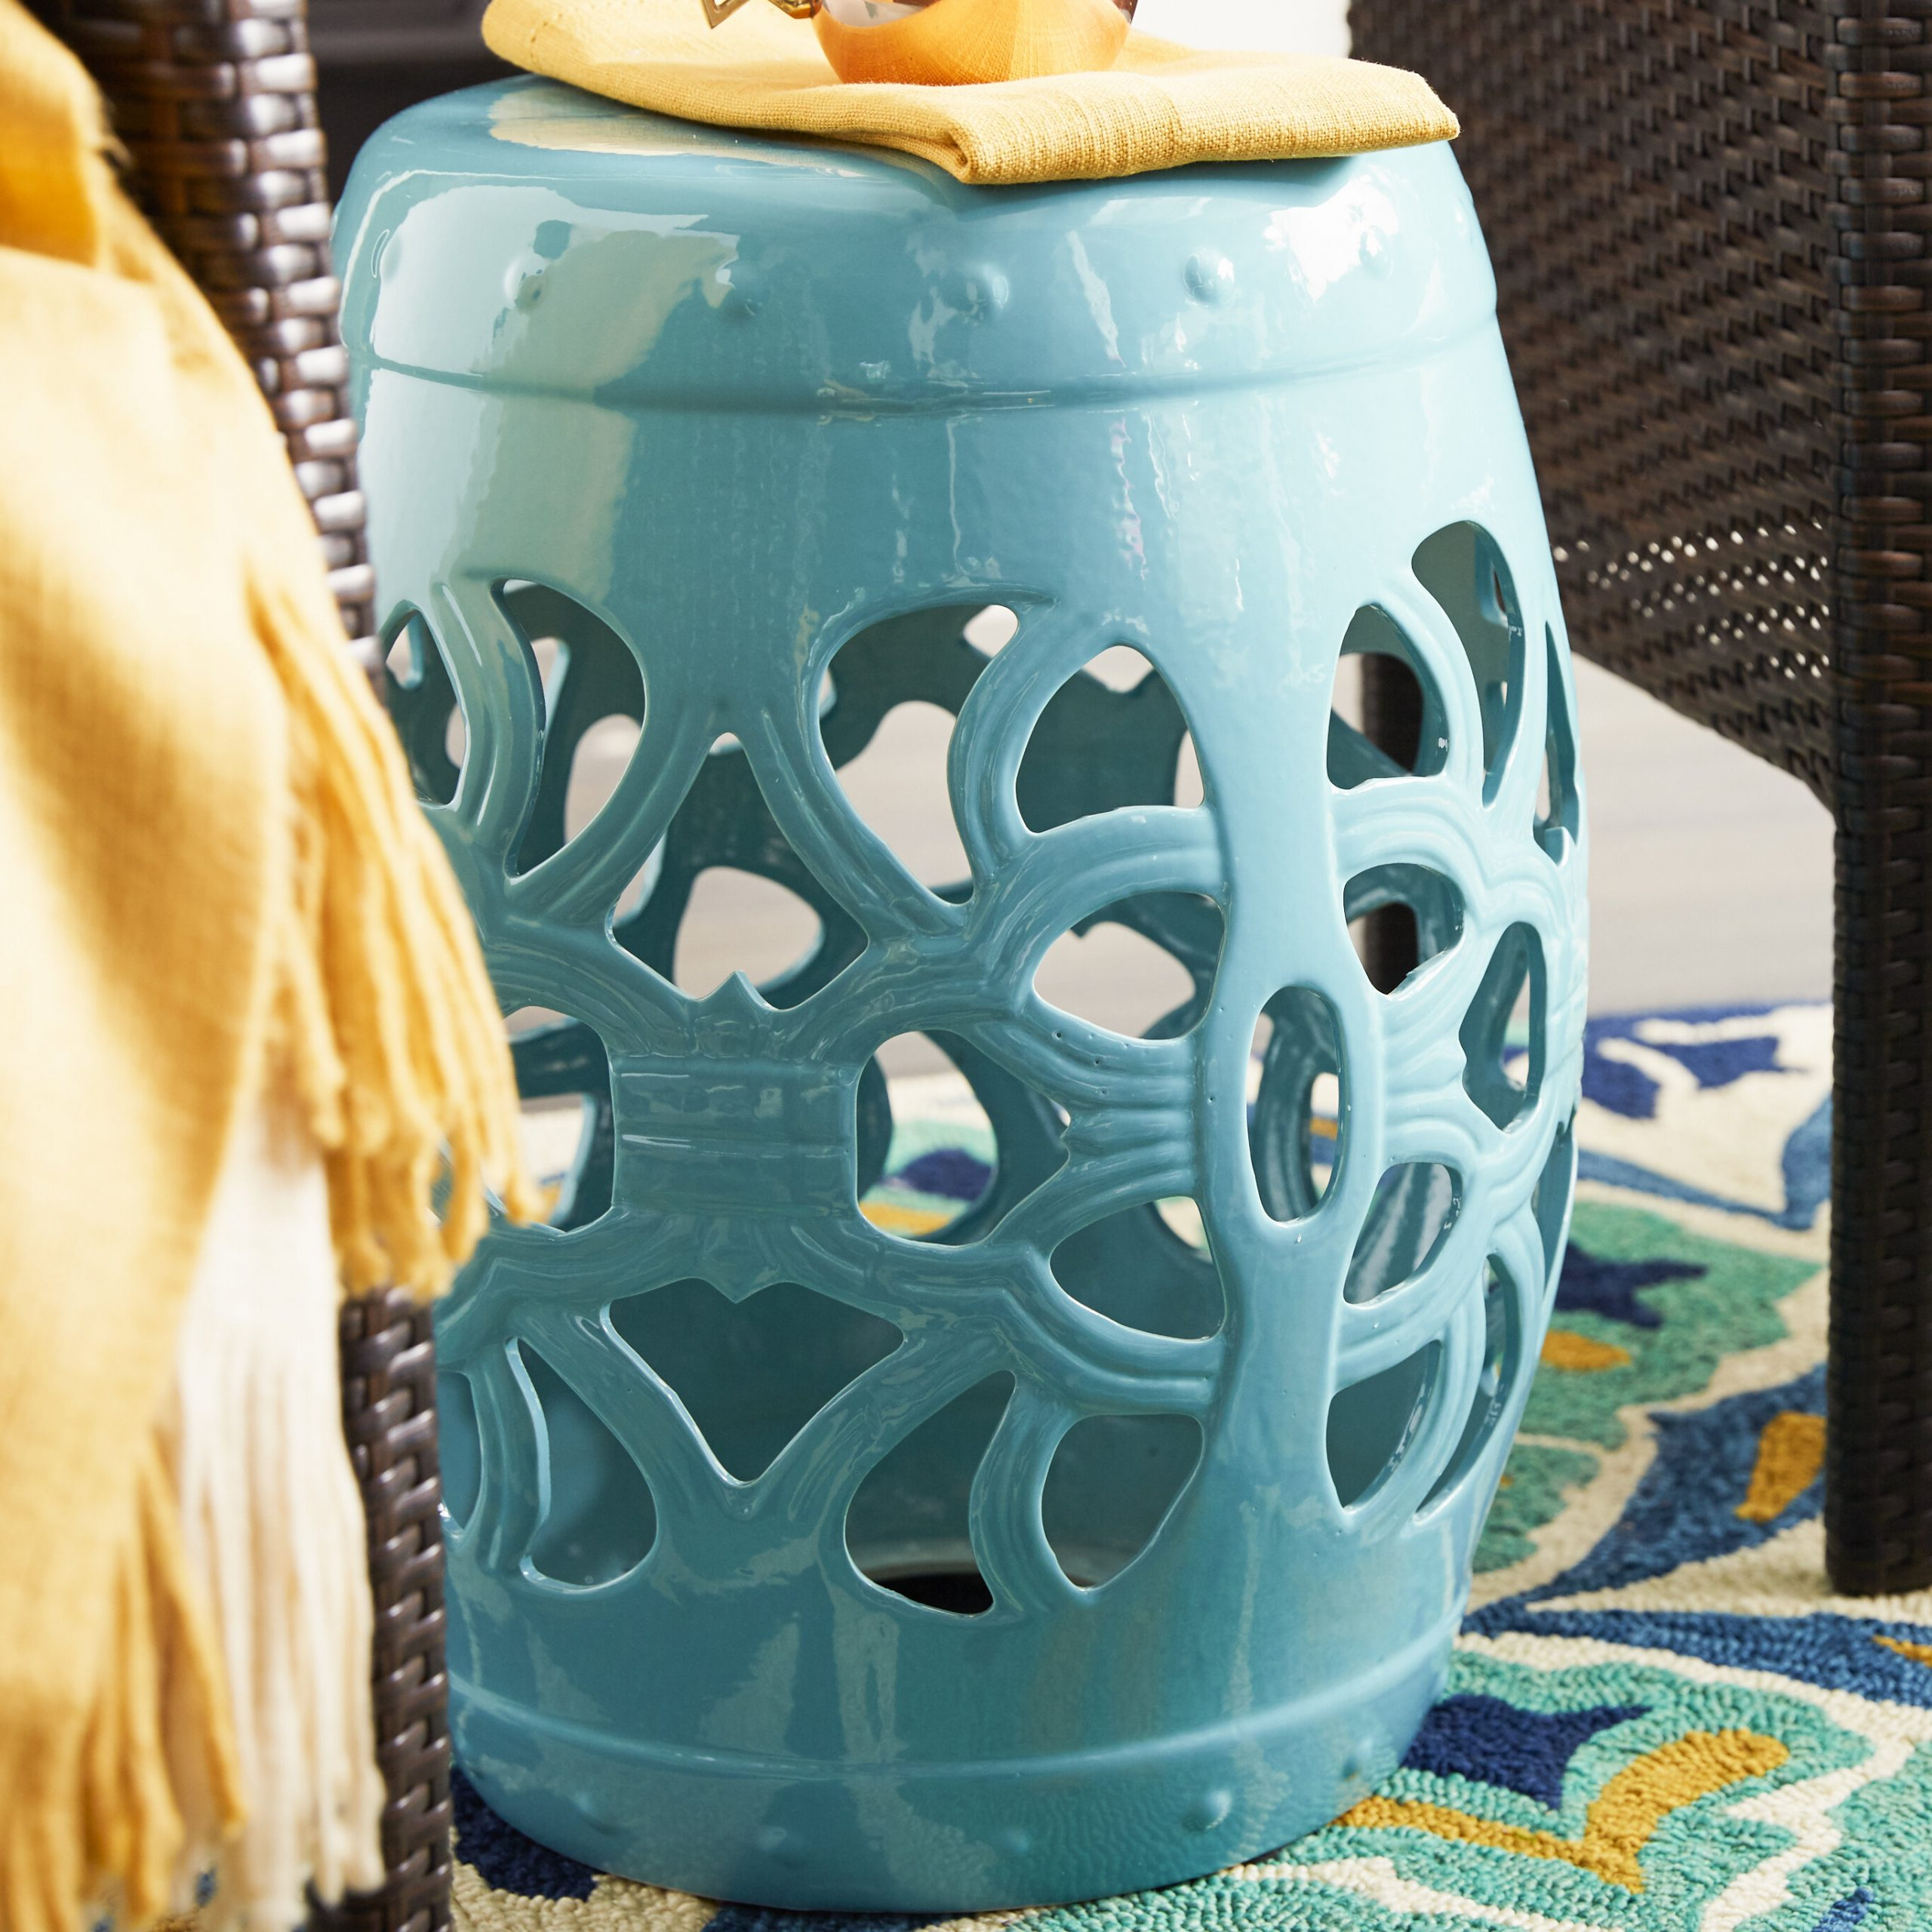 2020 Donofrio Ceramic Garden Stool Regarding Kelston Ceramic Garden Stools (View 30 of 30)